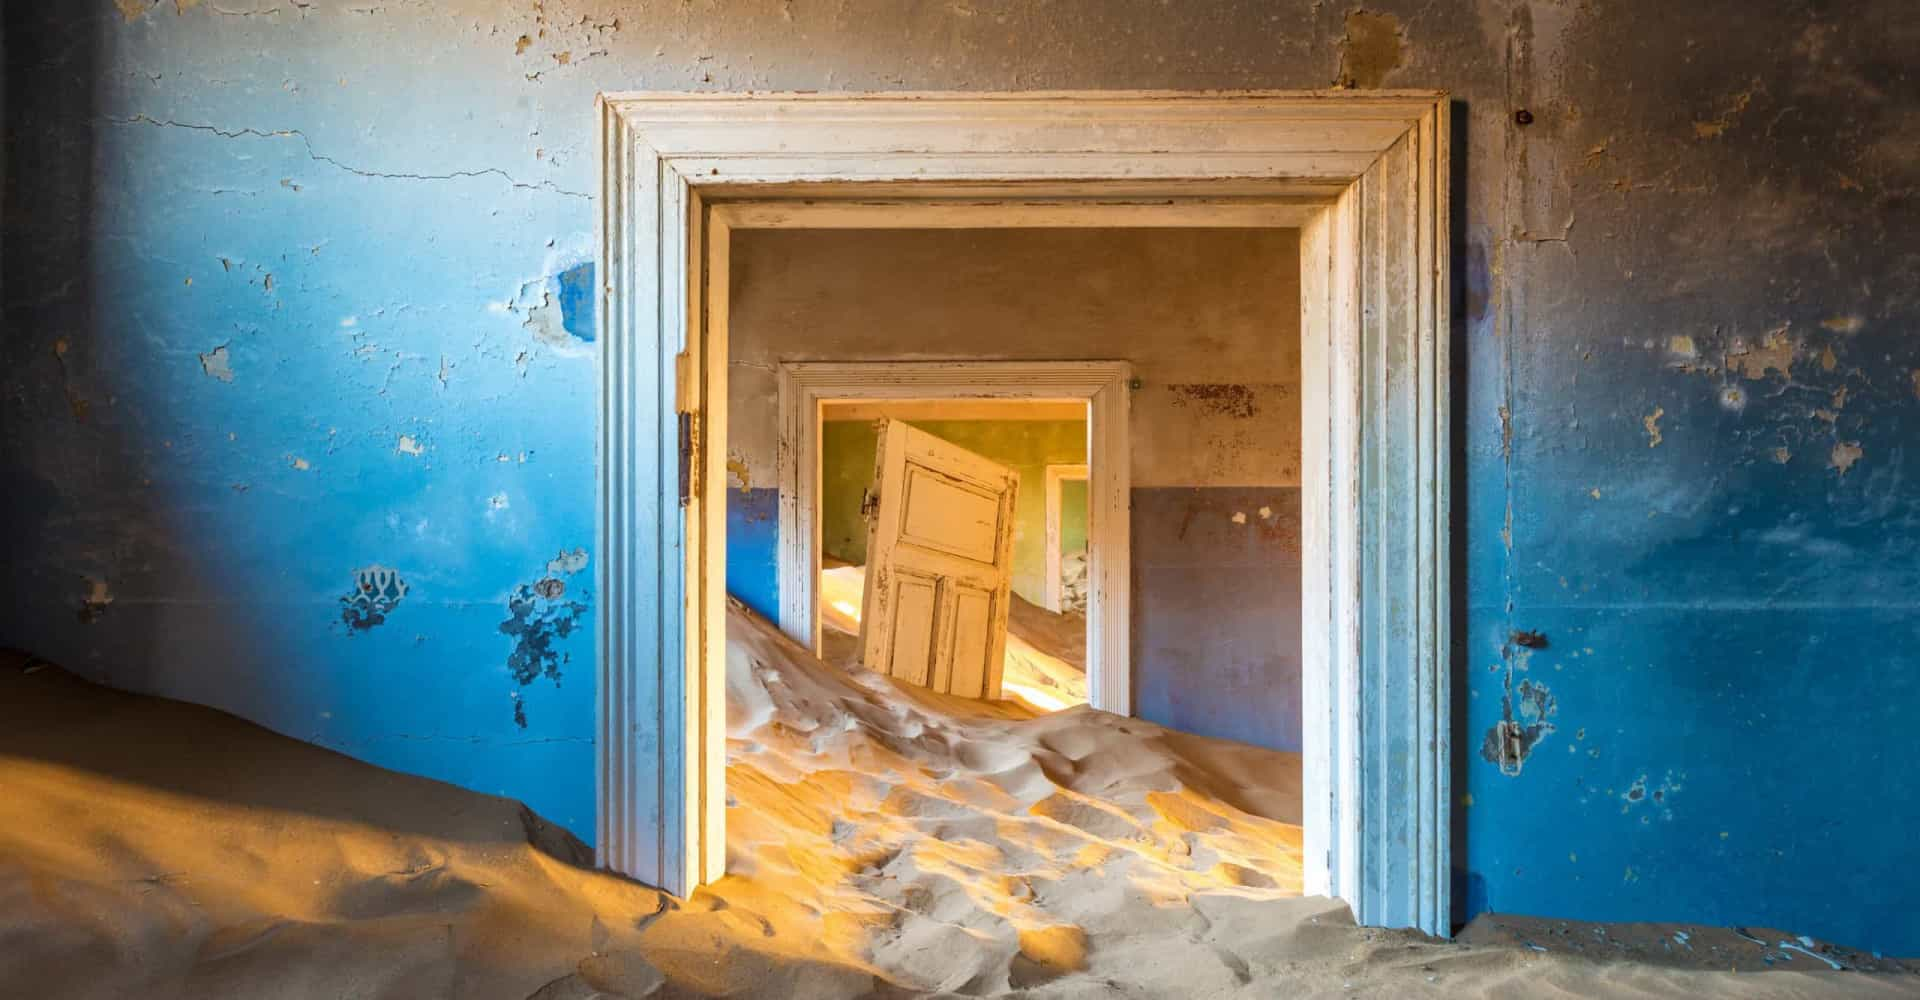 Kolmanskop: tour this ghost town buried in sand